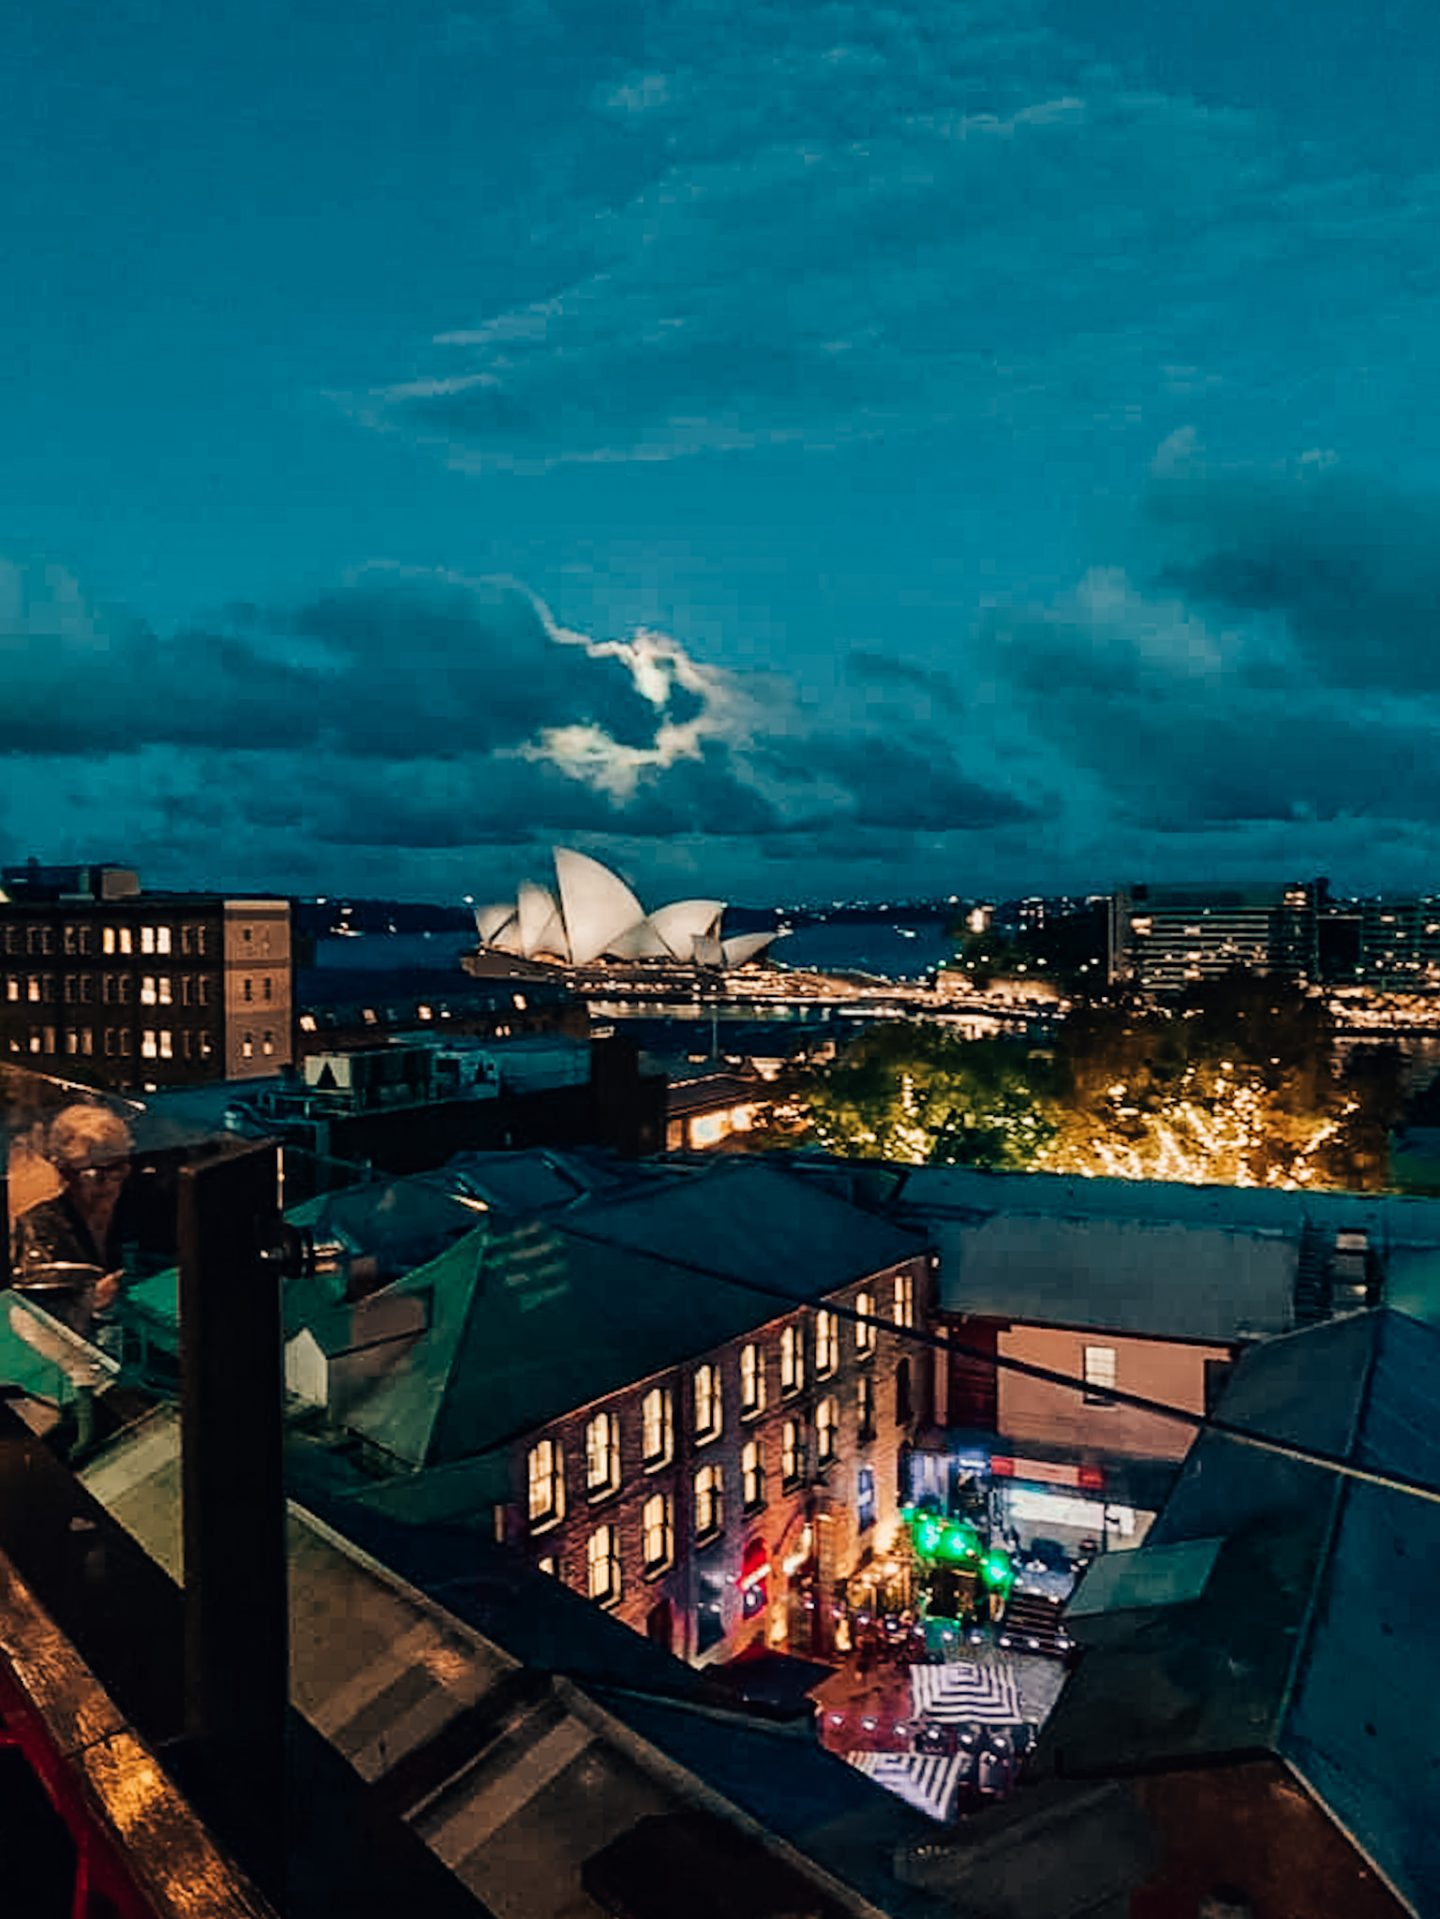 View of the Opera House and Sydney harbor from the Glenmore Hotel